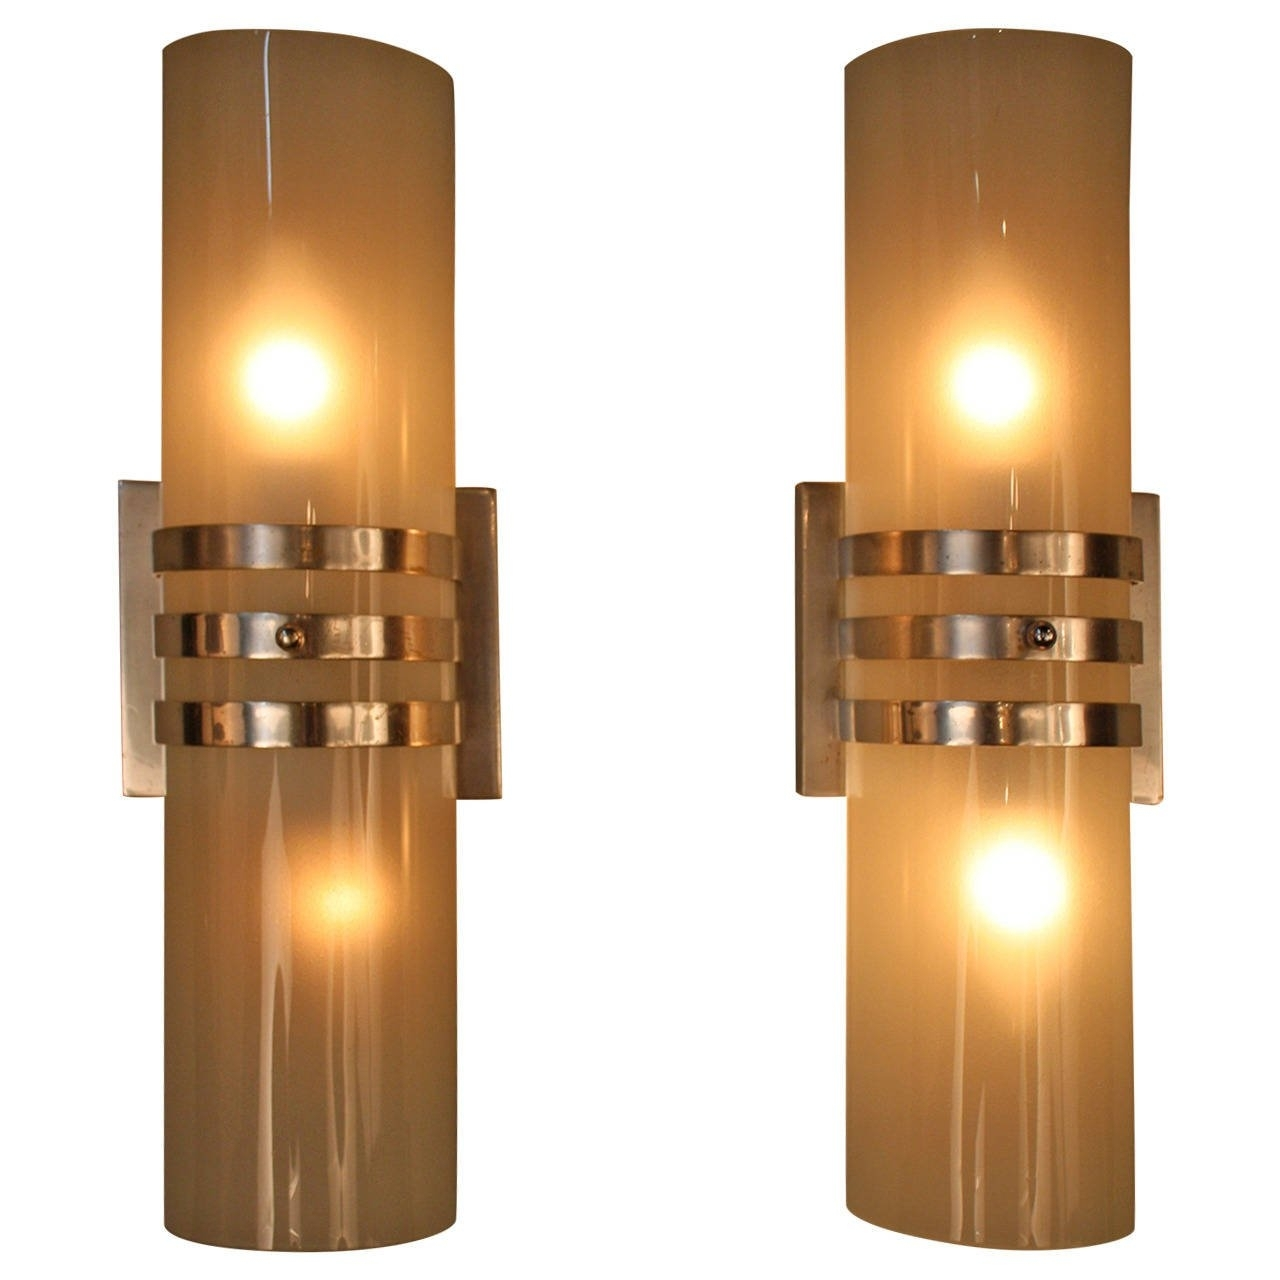 Epic Art Deco Wall Sconces 63 About Remodel Amazing Small Home Decor With Regard To Latest Art Deco Wall Sconces (View 12 of 20)